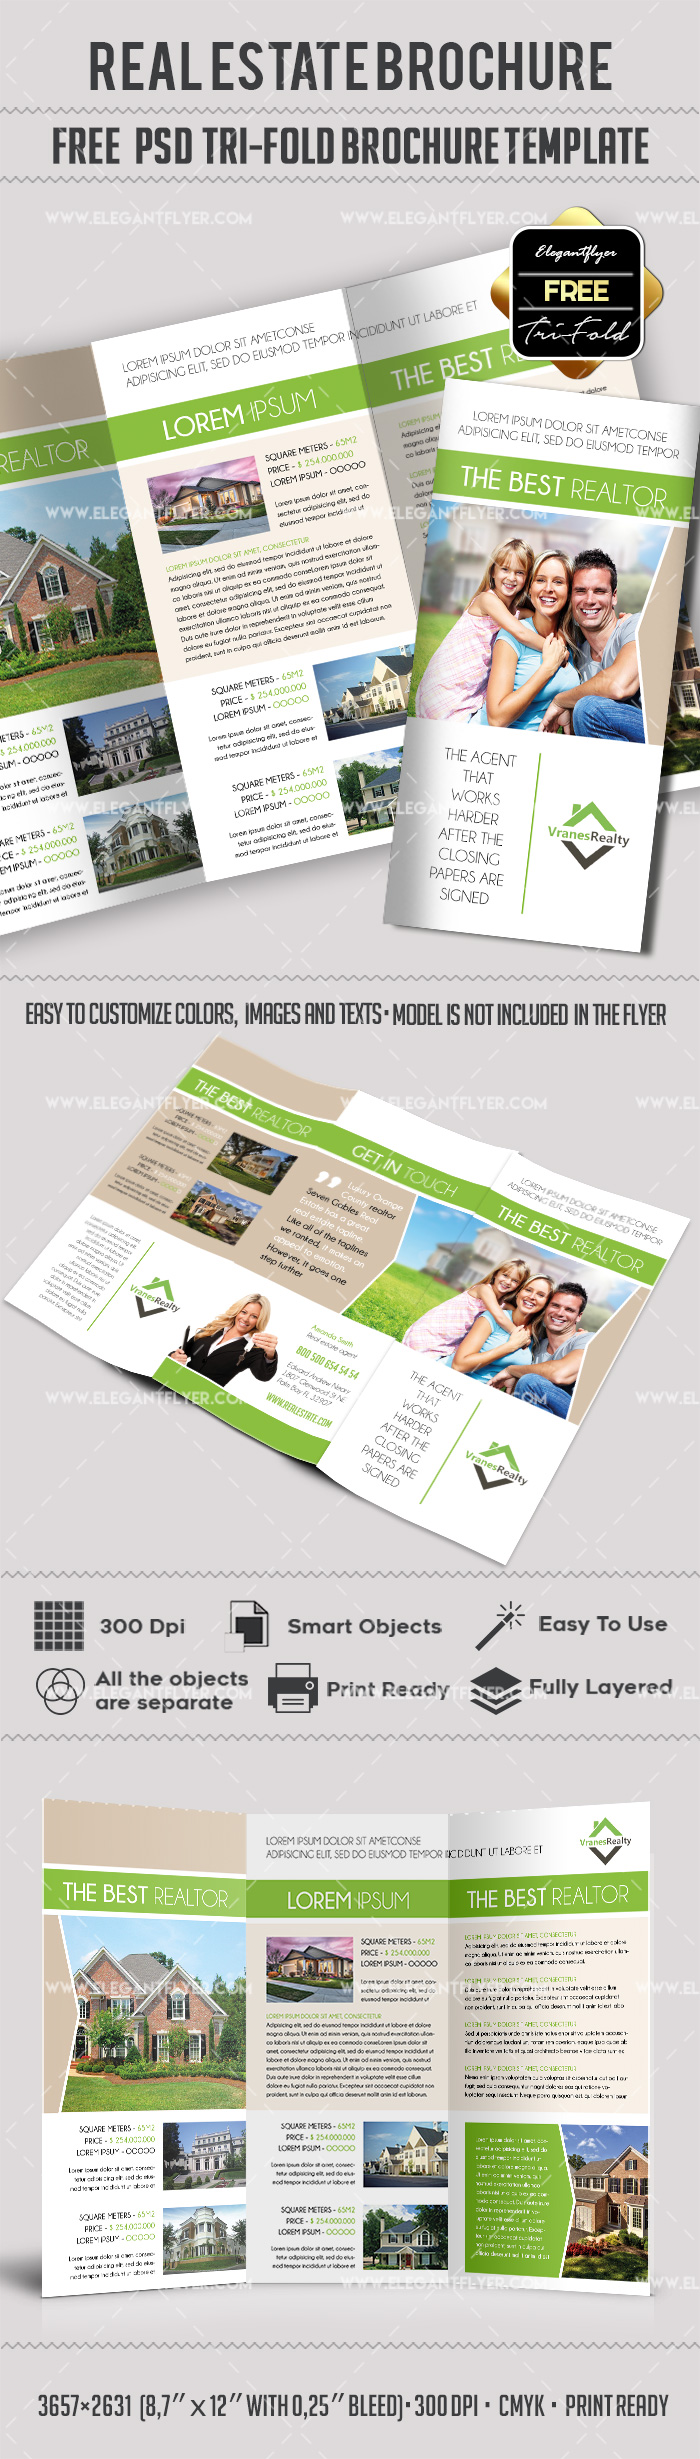 Free real estate trifold brochure template in psd by for Free psd brochure template